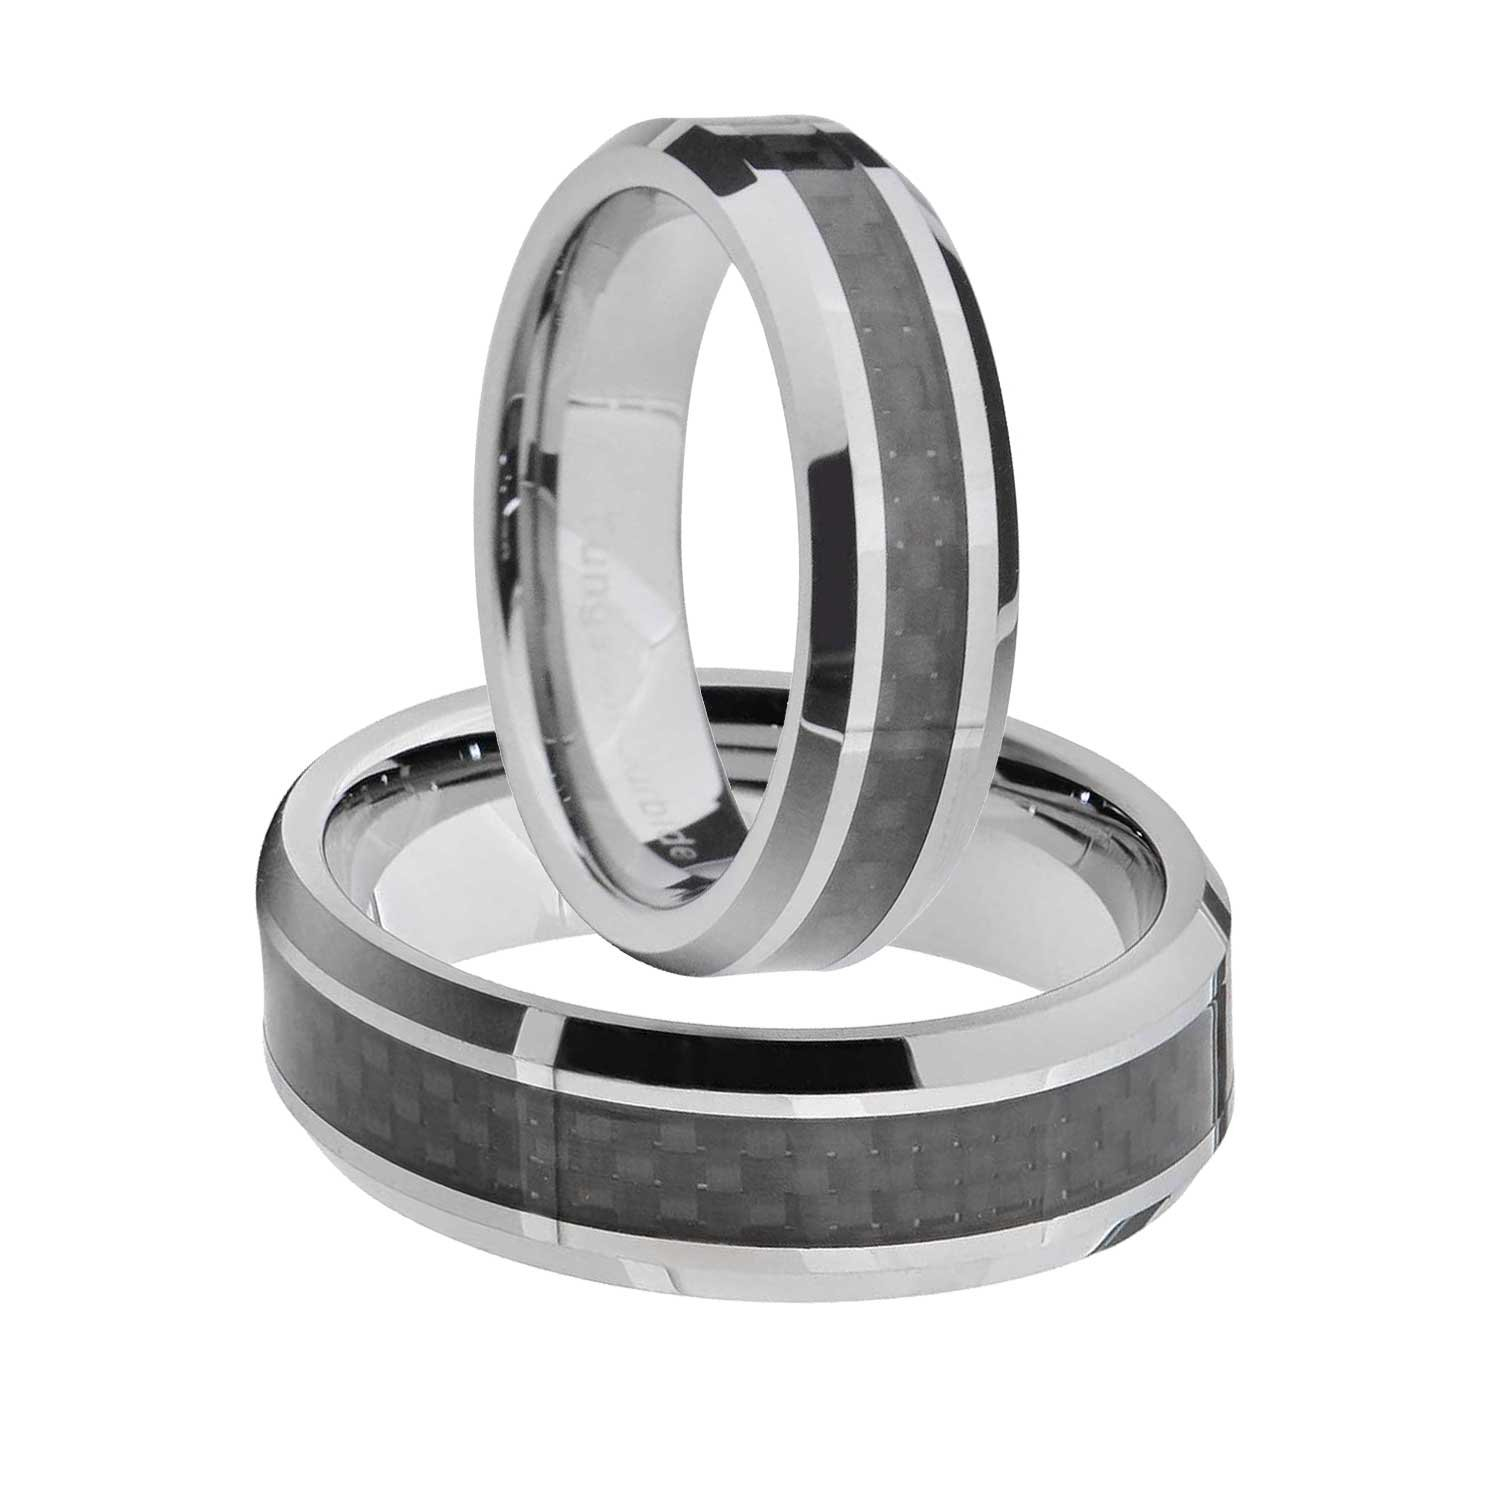 Tungsten His & Hers Engagement & Wedding Ring Sets Black Carbon Fibre Bevel Edge